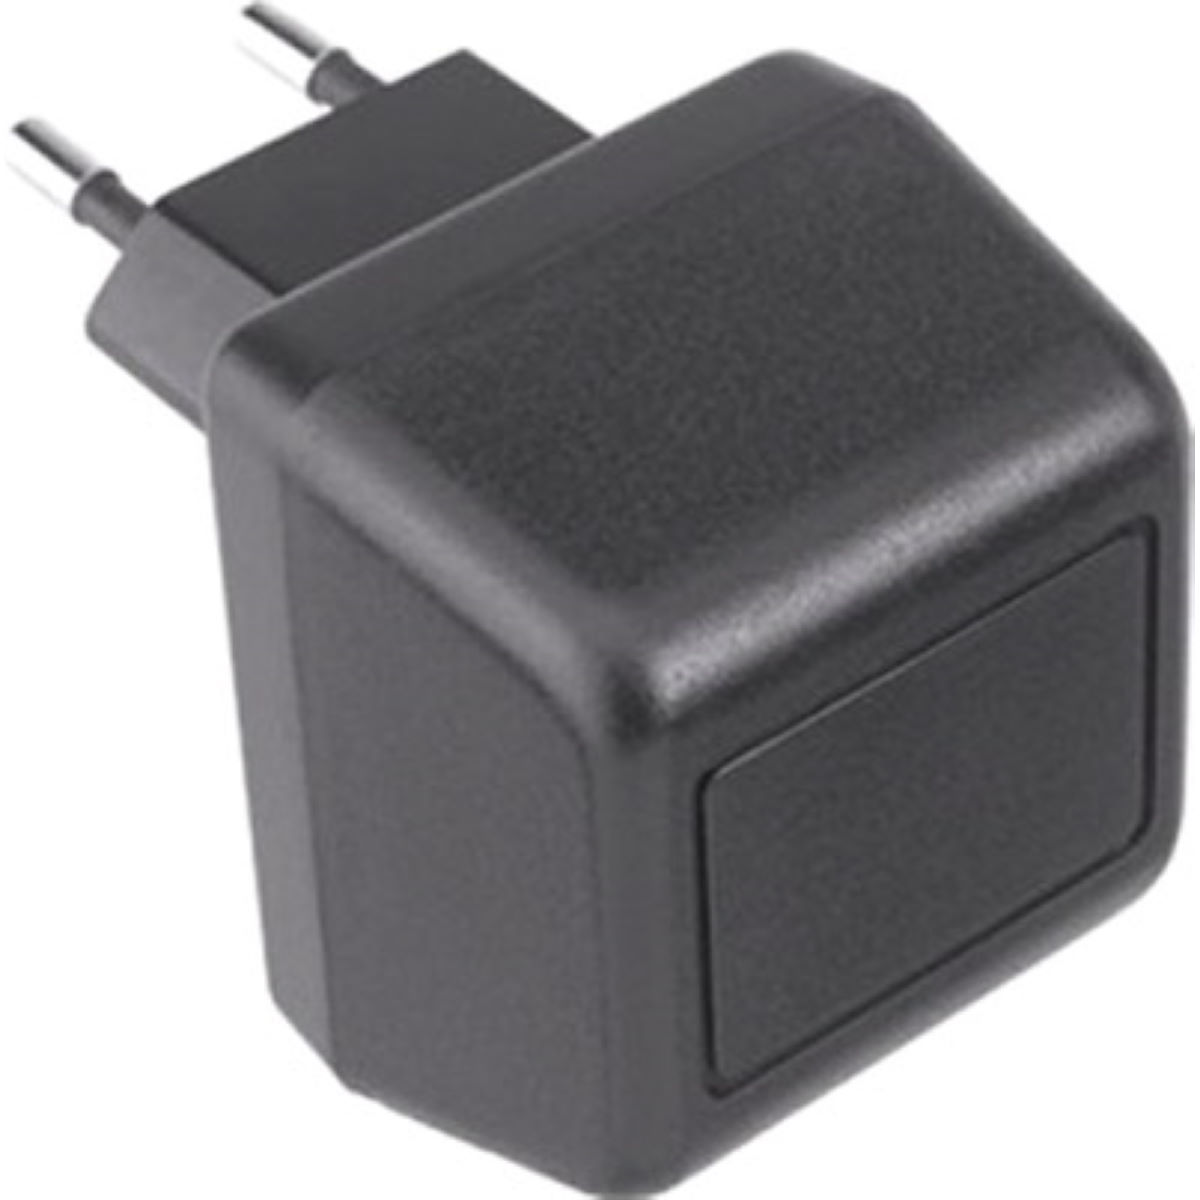 Sigma Battery Charger - One Size Black | Chargers